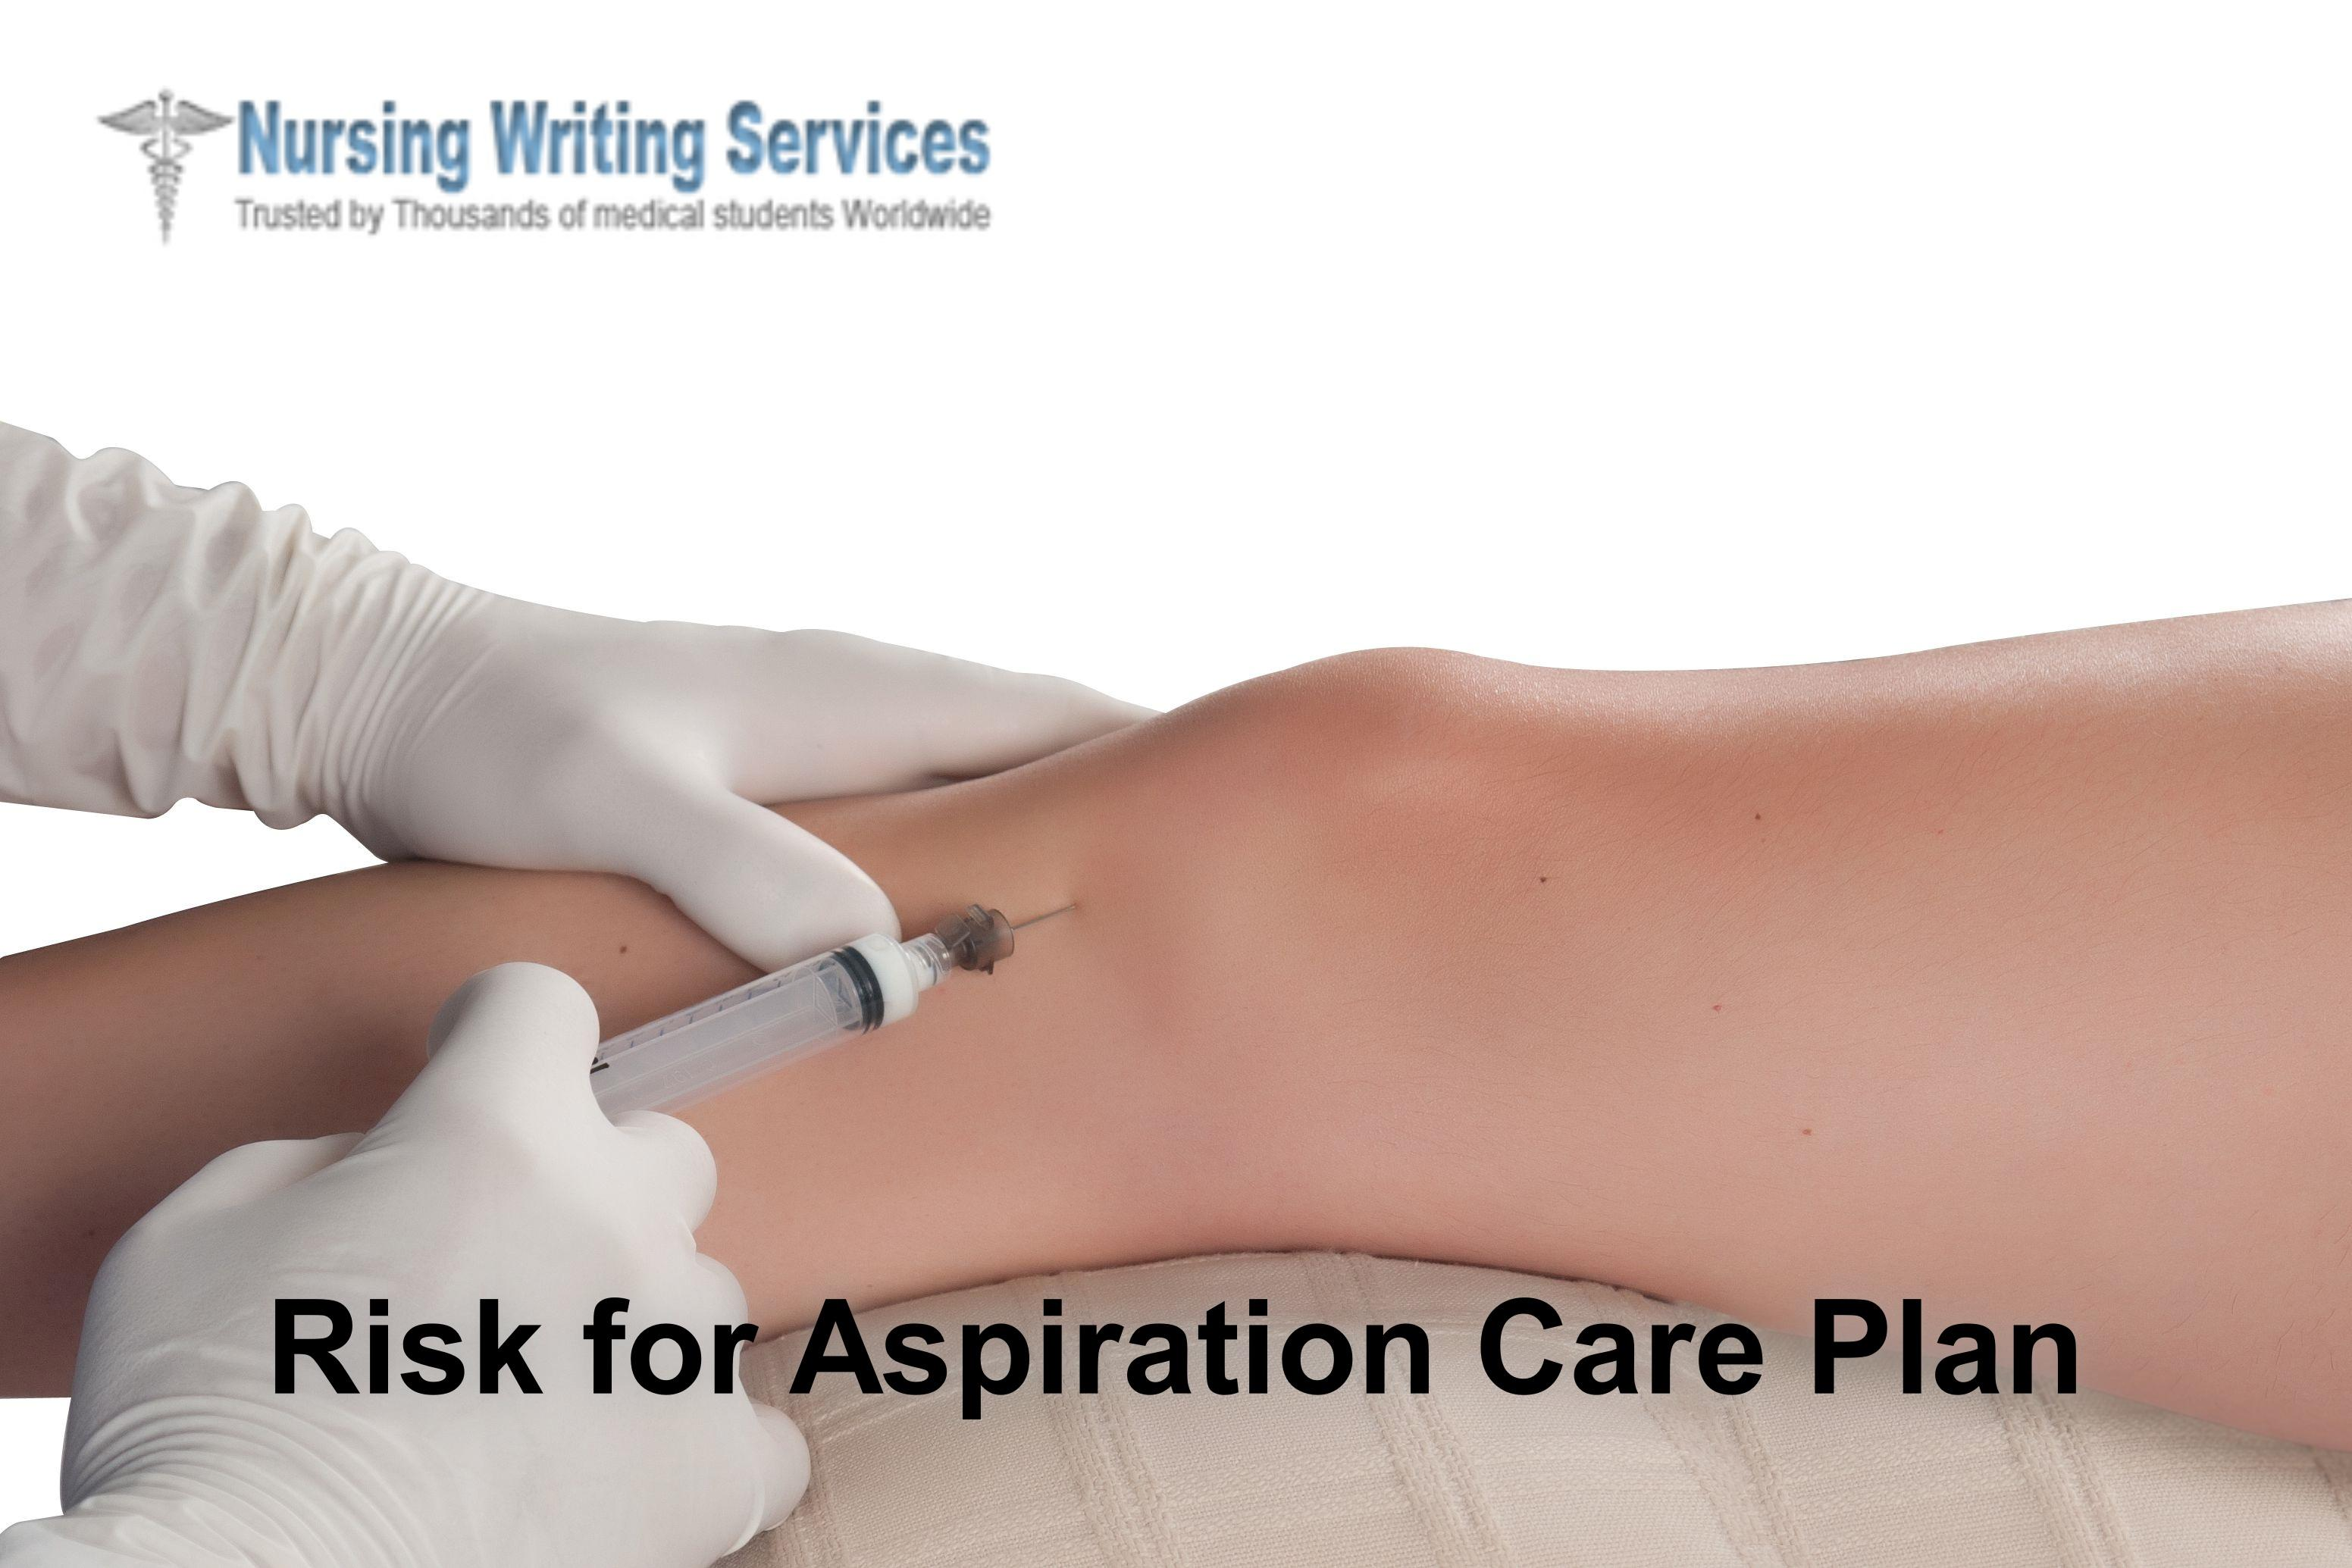 Risk for Aspiration Care Plan Writing Services